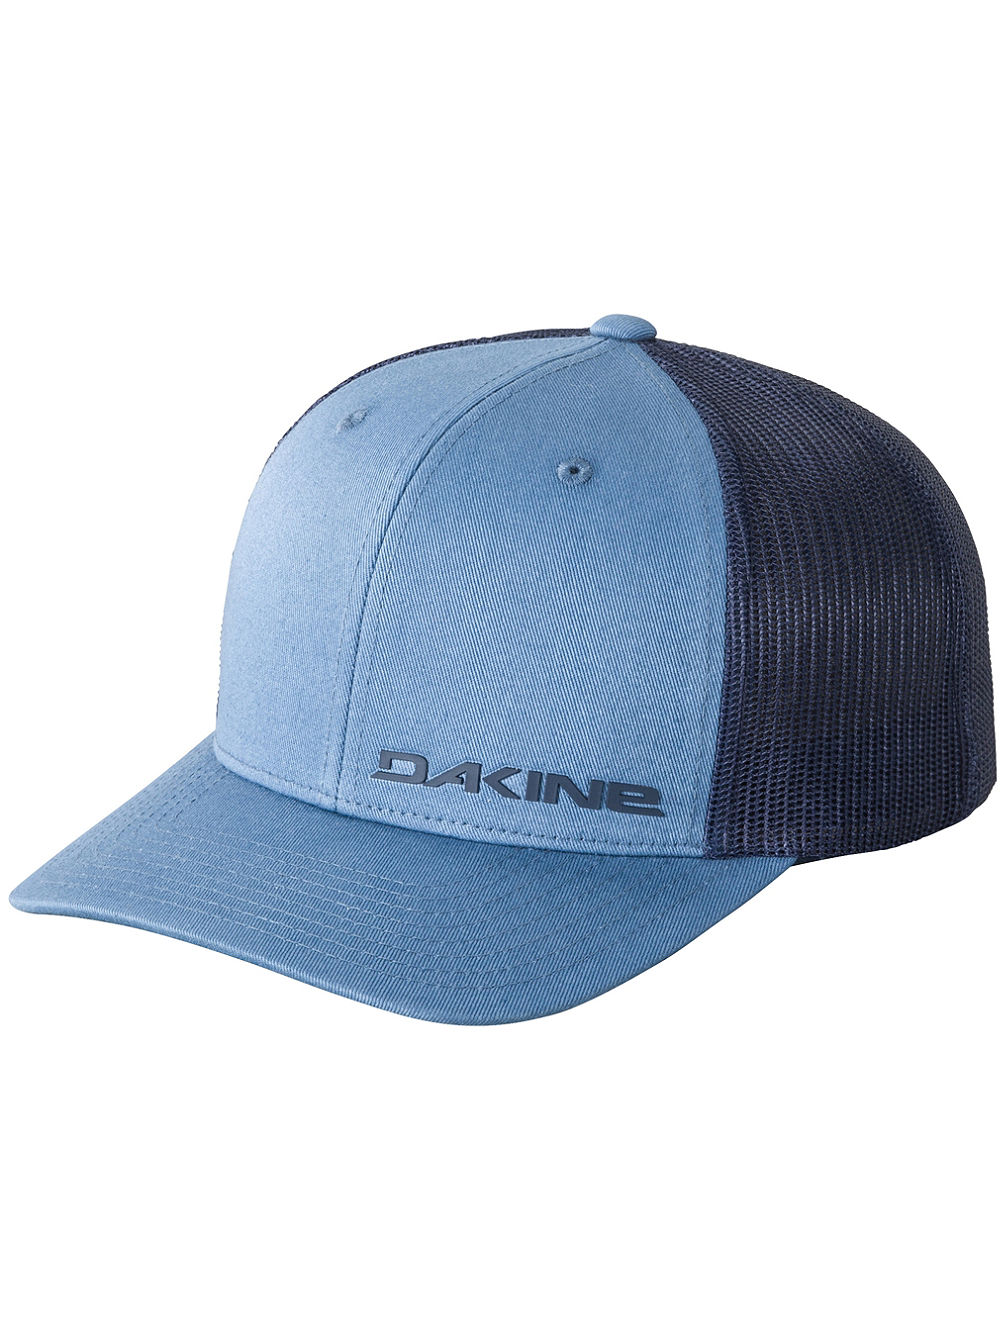 Rail Trucker Cap